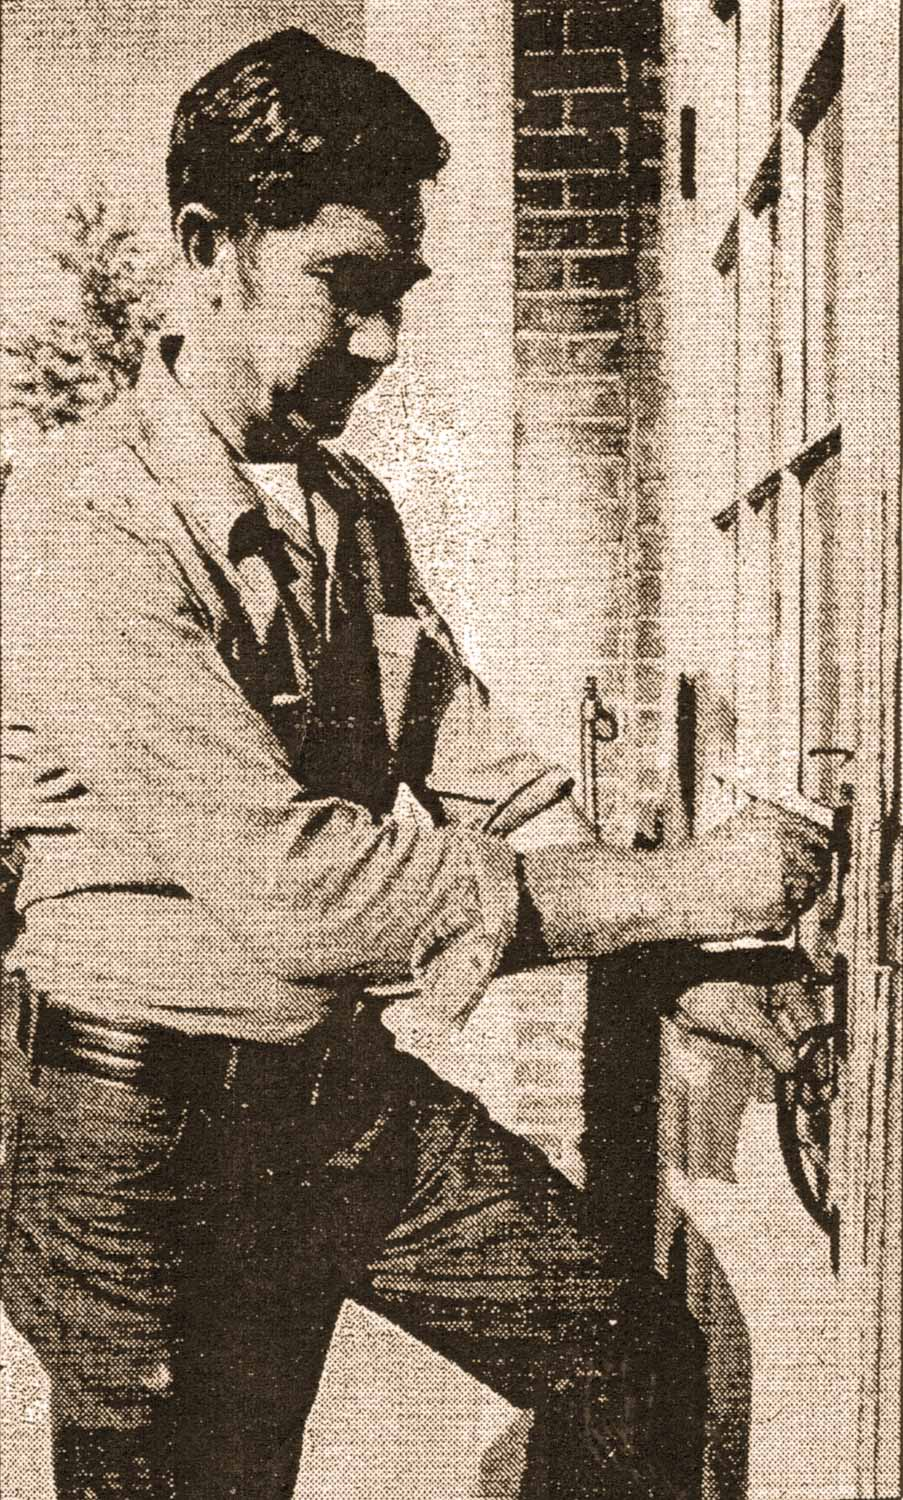 Locksmith John Drabick locks the Hudson Training School administration building for the last time. Source: Hudson Register-Star, September 11, 1975.